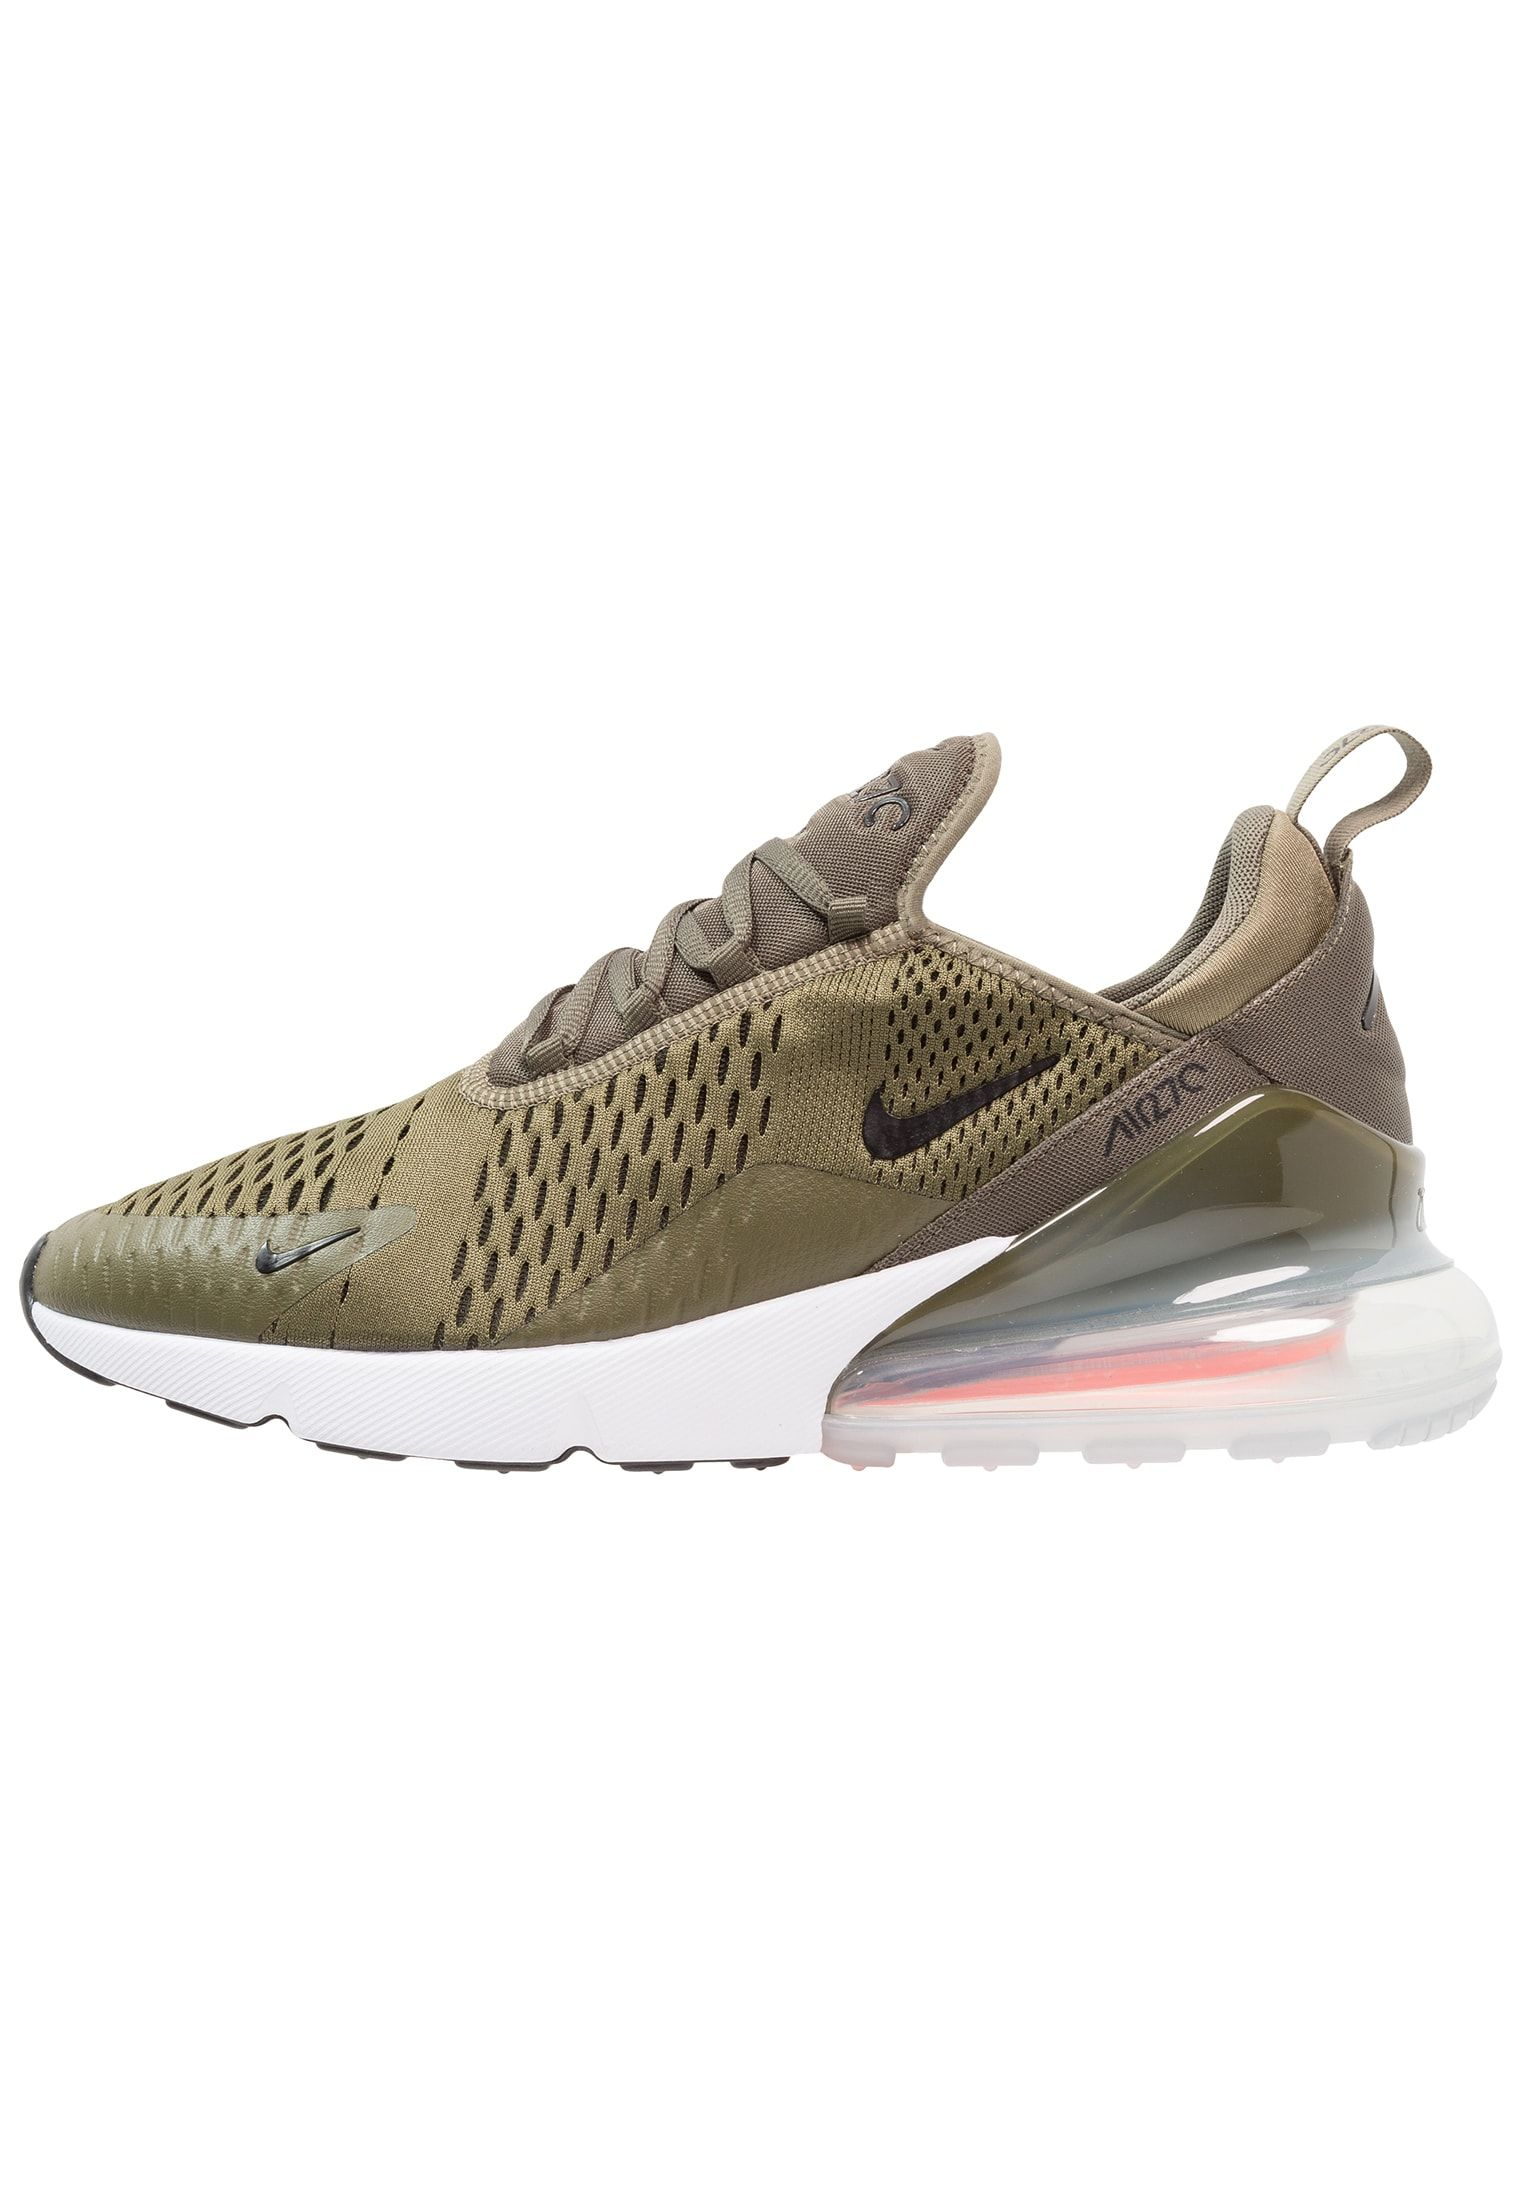 the best attitude 9b36f c5a6f Nike Sportswear AIR MAX 270 - Sneaker low - medium olive black total  orange white - Zalando.de